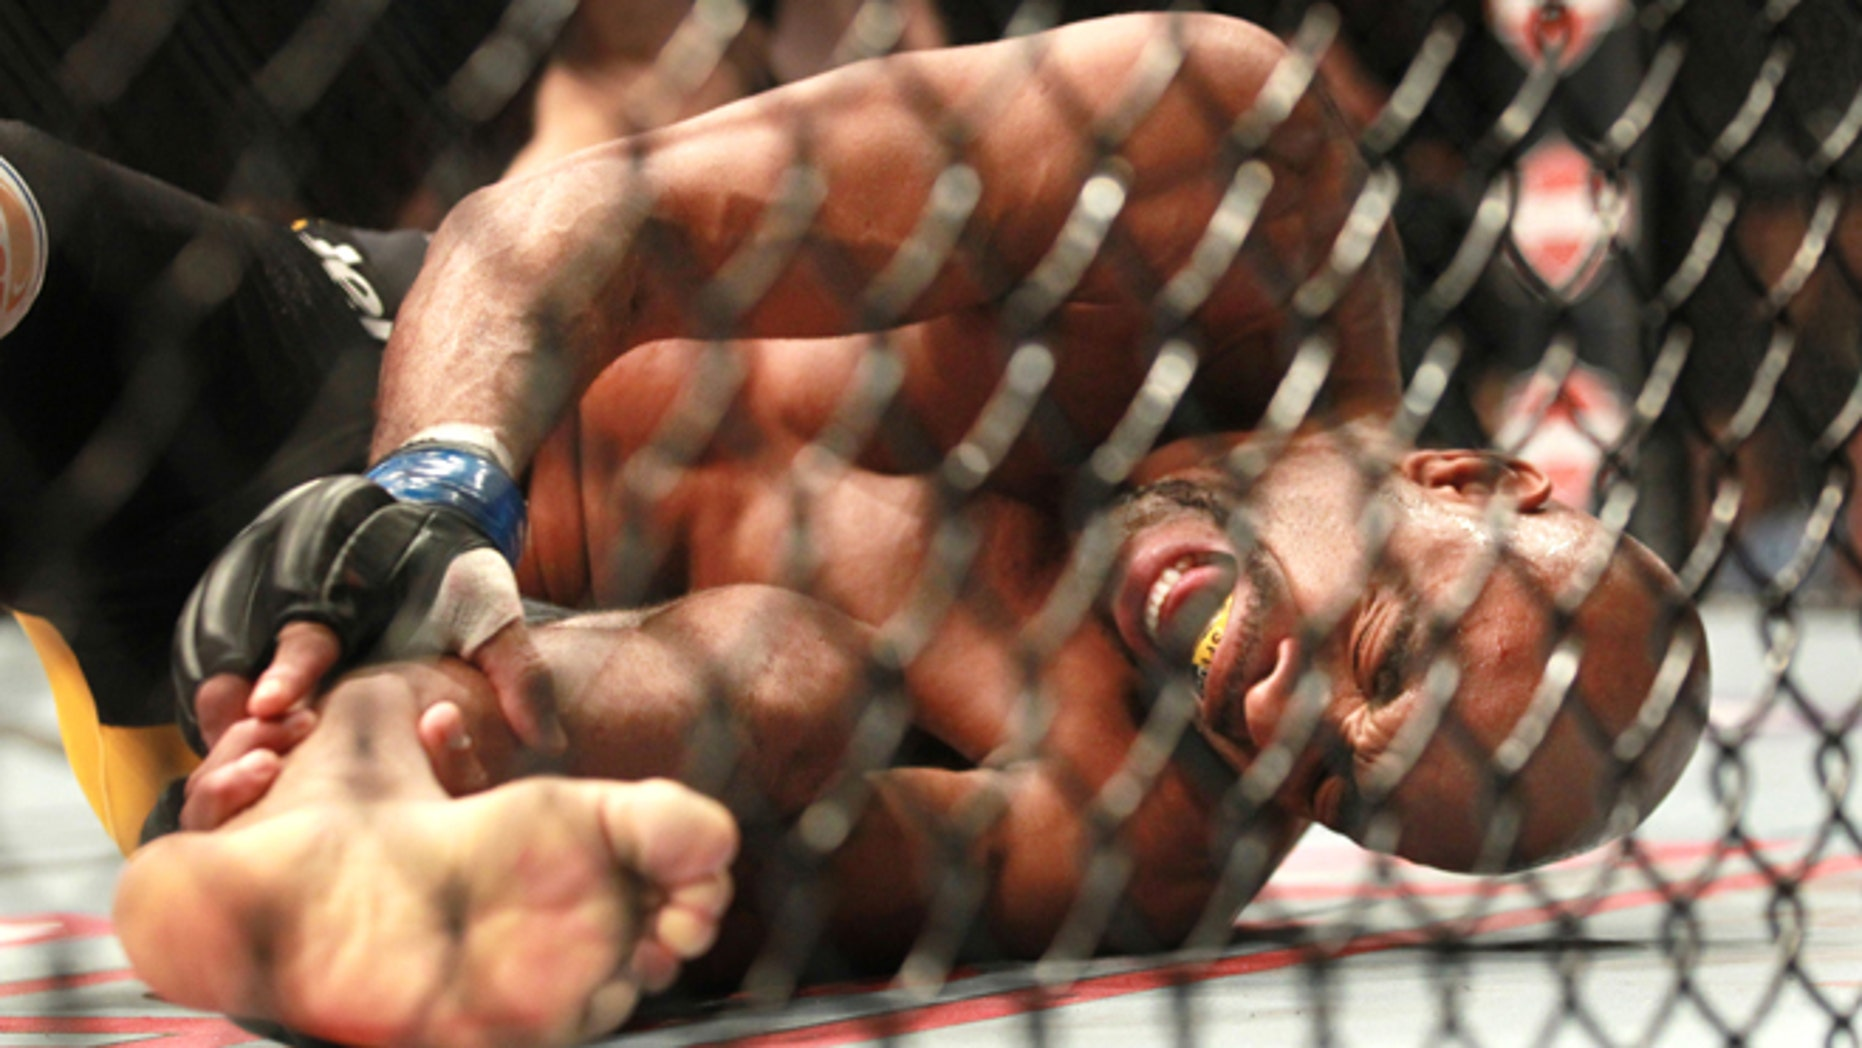 Dec. 28, 2013: Anderson Silva screams after kicking Chris Weidman and injuring his leg during the UFC 168 mixed martial arts middleweight championship bout.